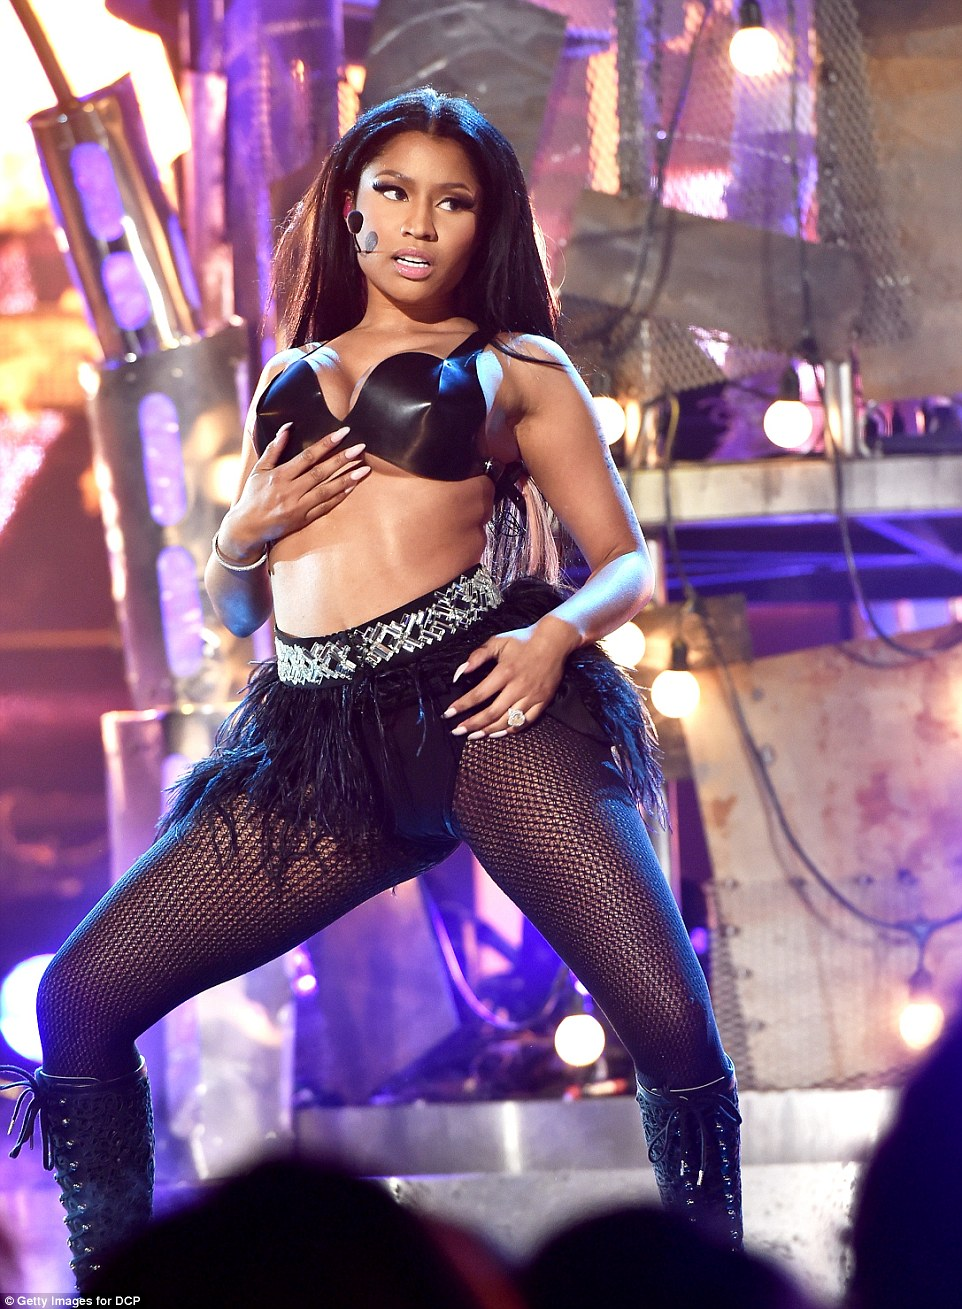 Getting down: Nicki Minaj gave a raunchy performance of The Night Is Still Young with David Guetta